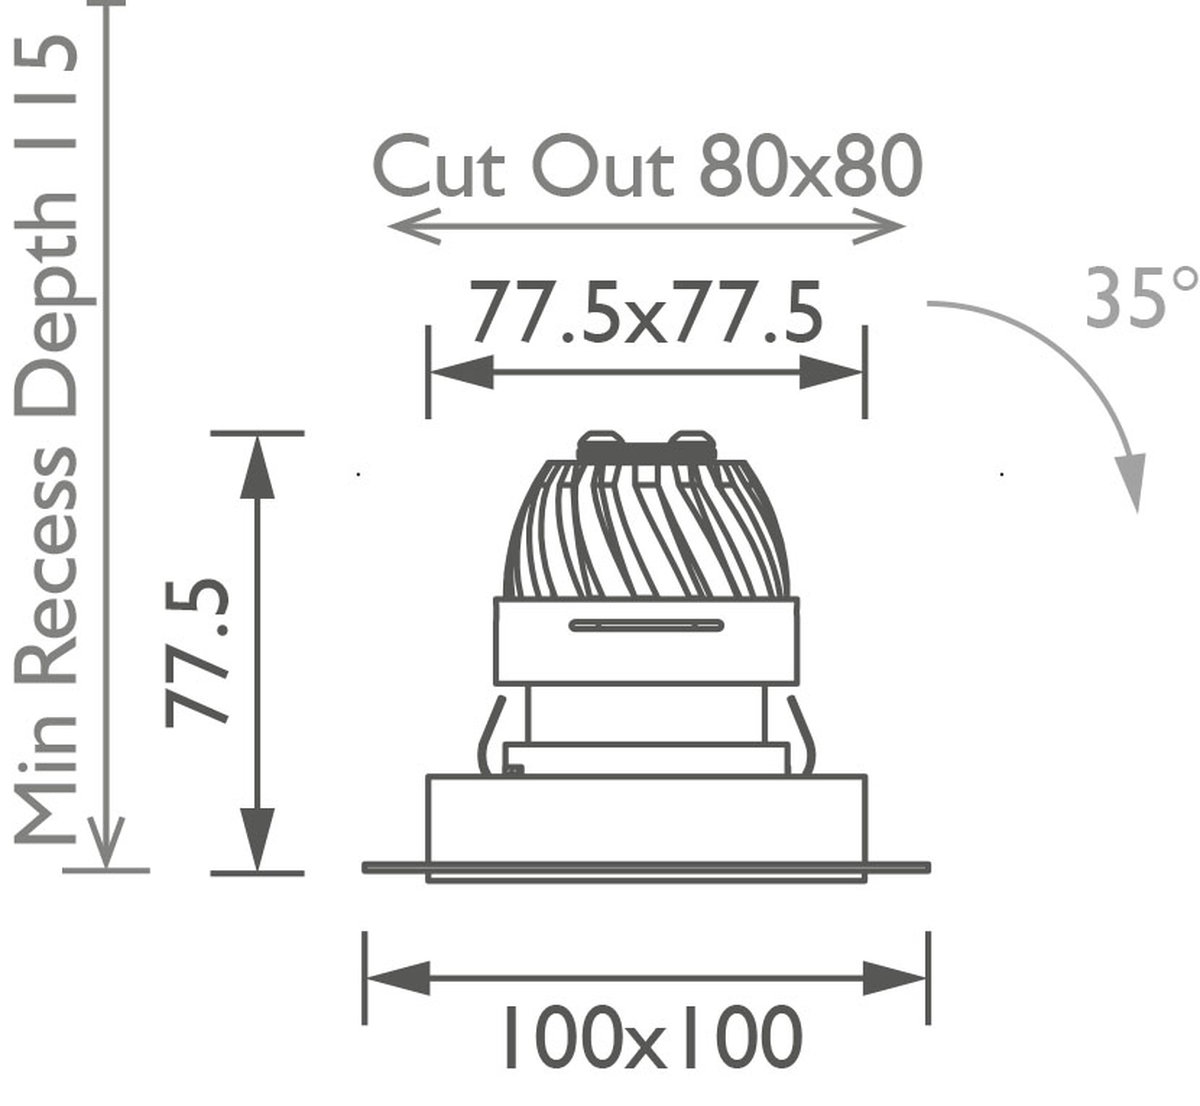 Square 50 Trimless Downlight technical image